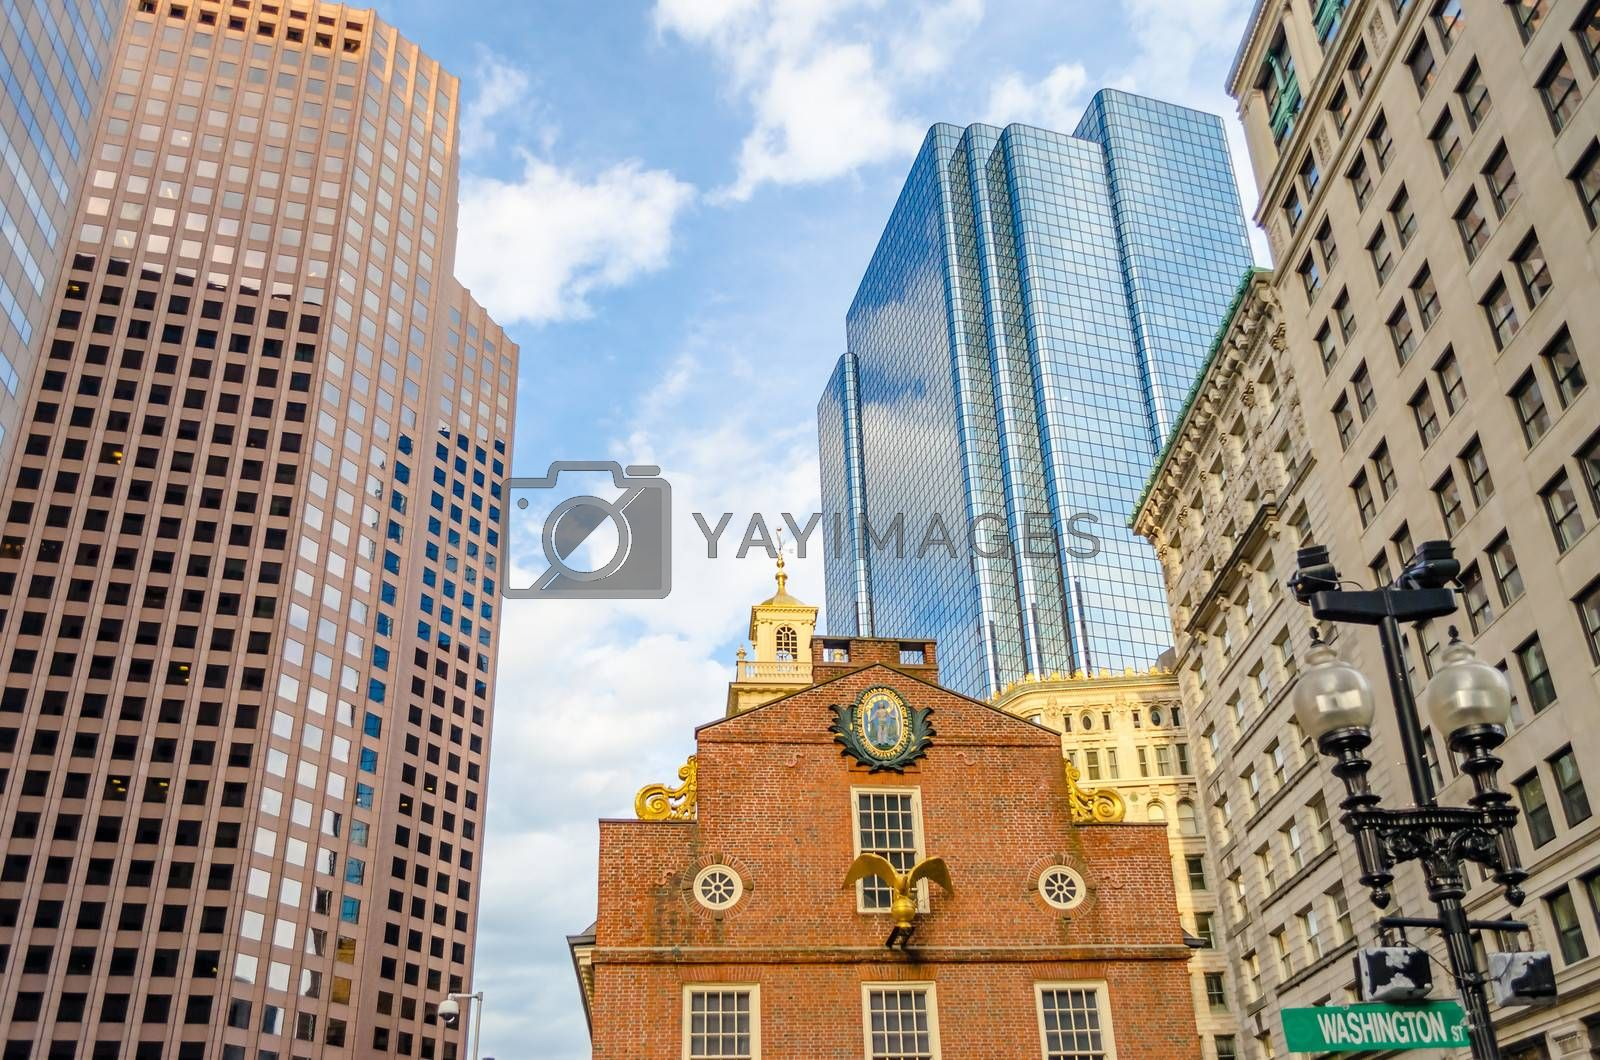 Old State House, Boston by Marco Rubino